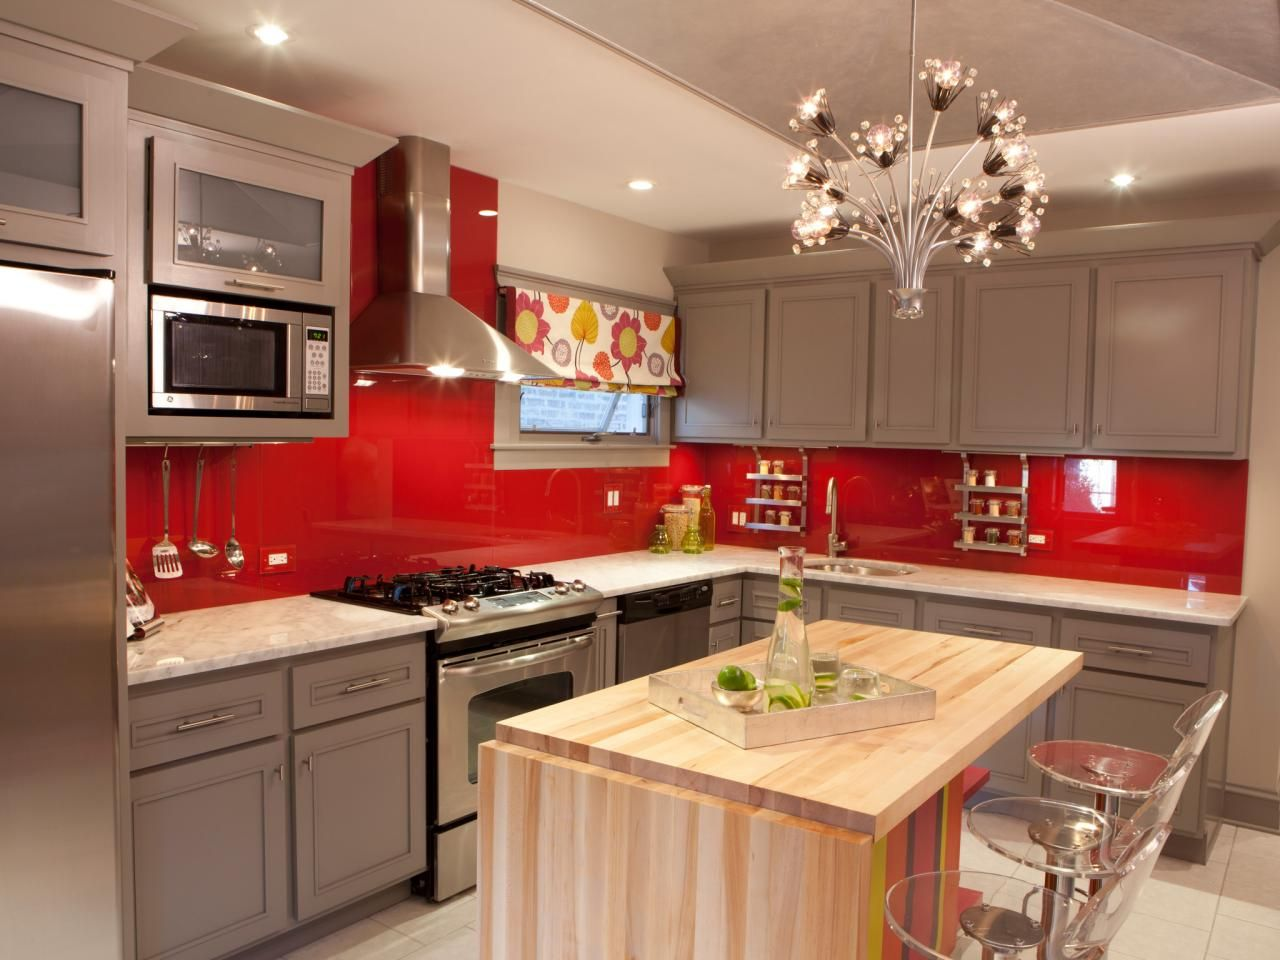 Red Kitchen Paint Pictures Ideas Tips From Hgtv Red Kitchen Decor Red Kitchen Walls Kitchen Design Color